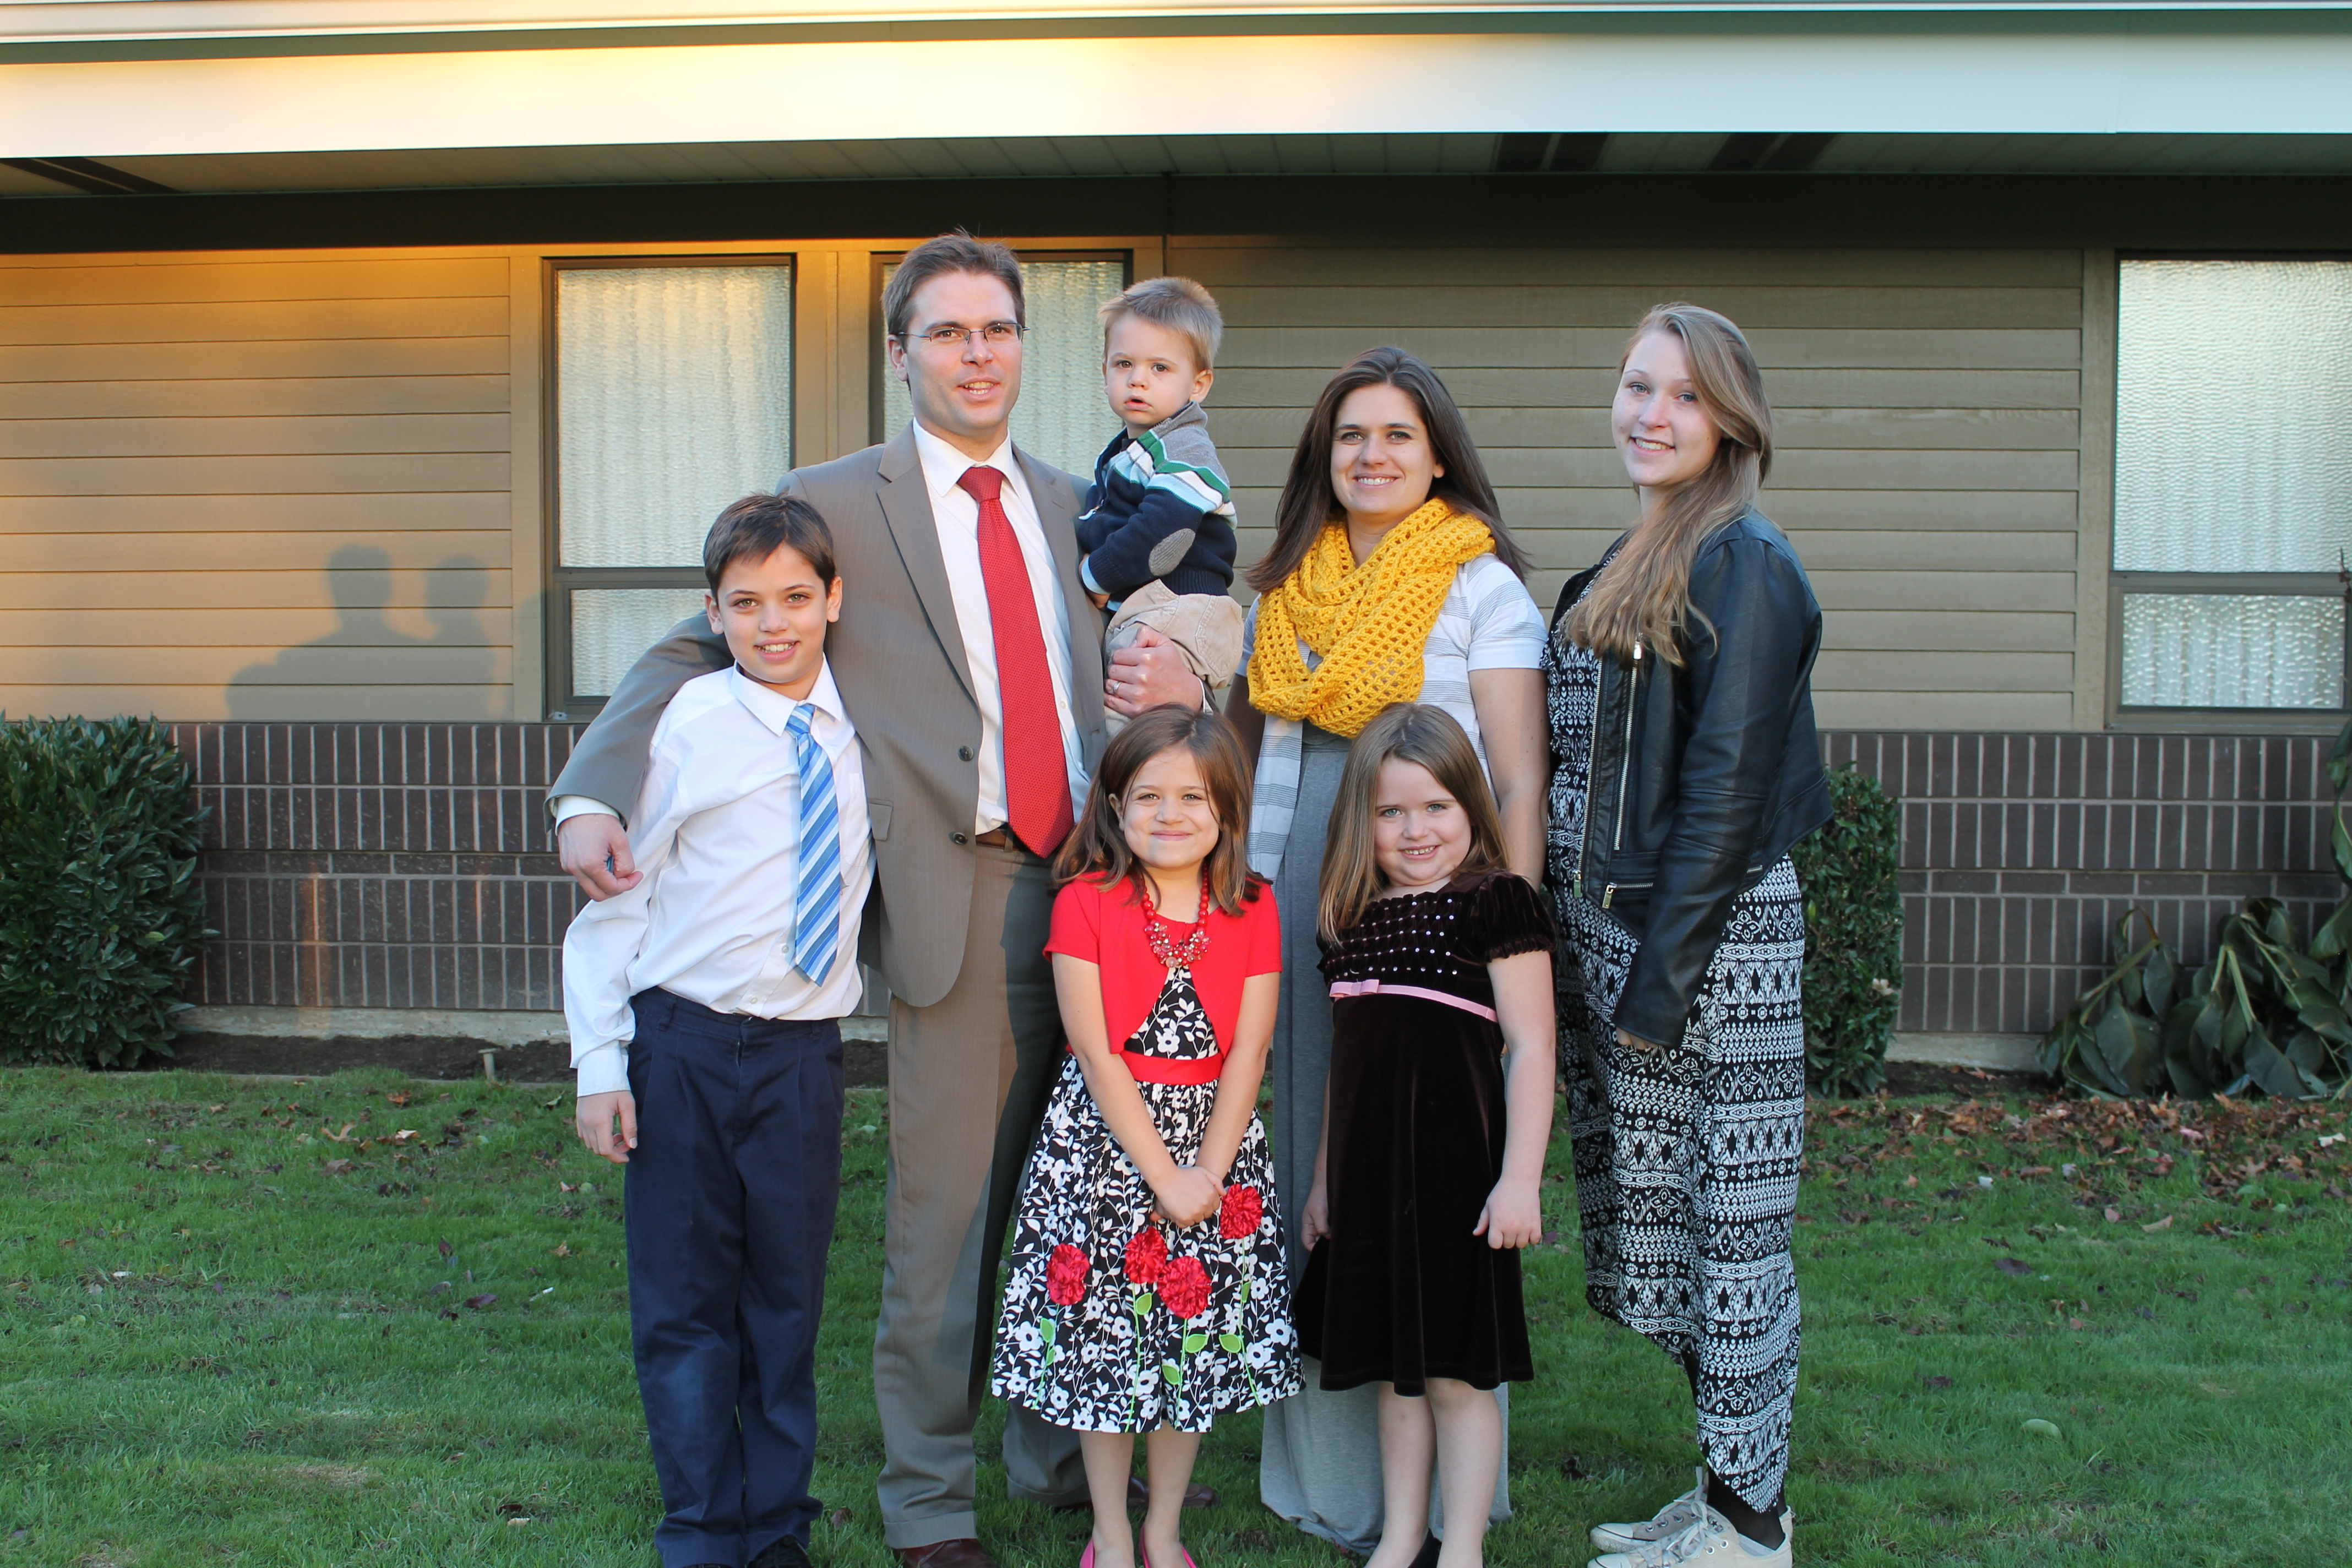 Rike From Germany With Her Host Family At Their Church In Washington